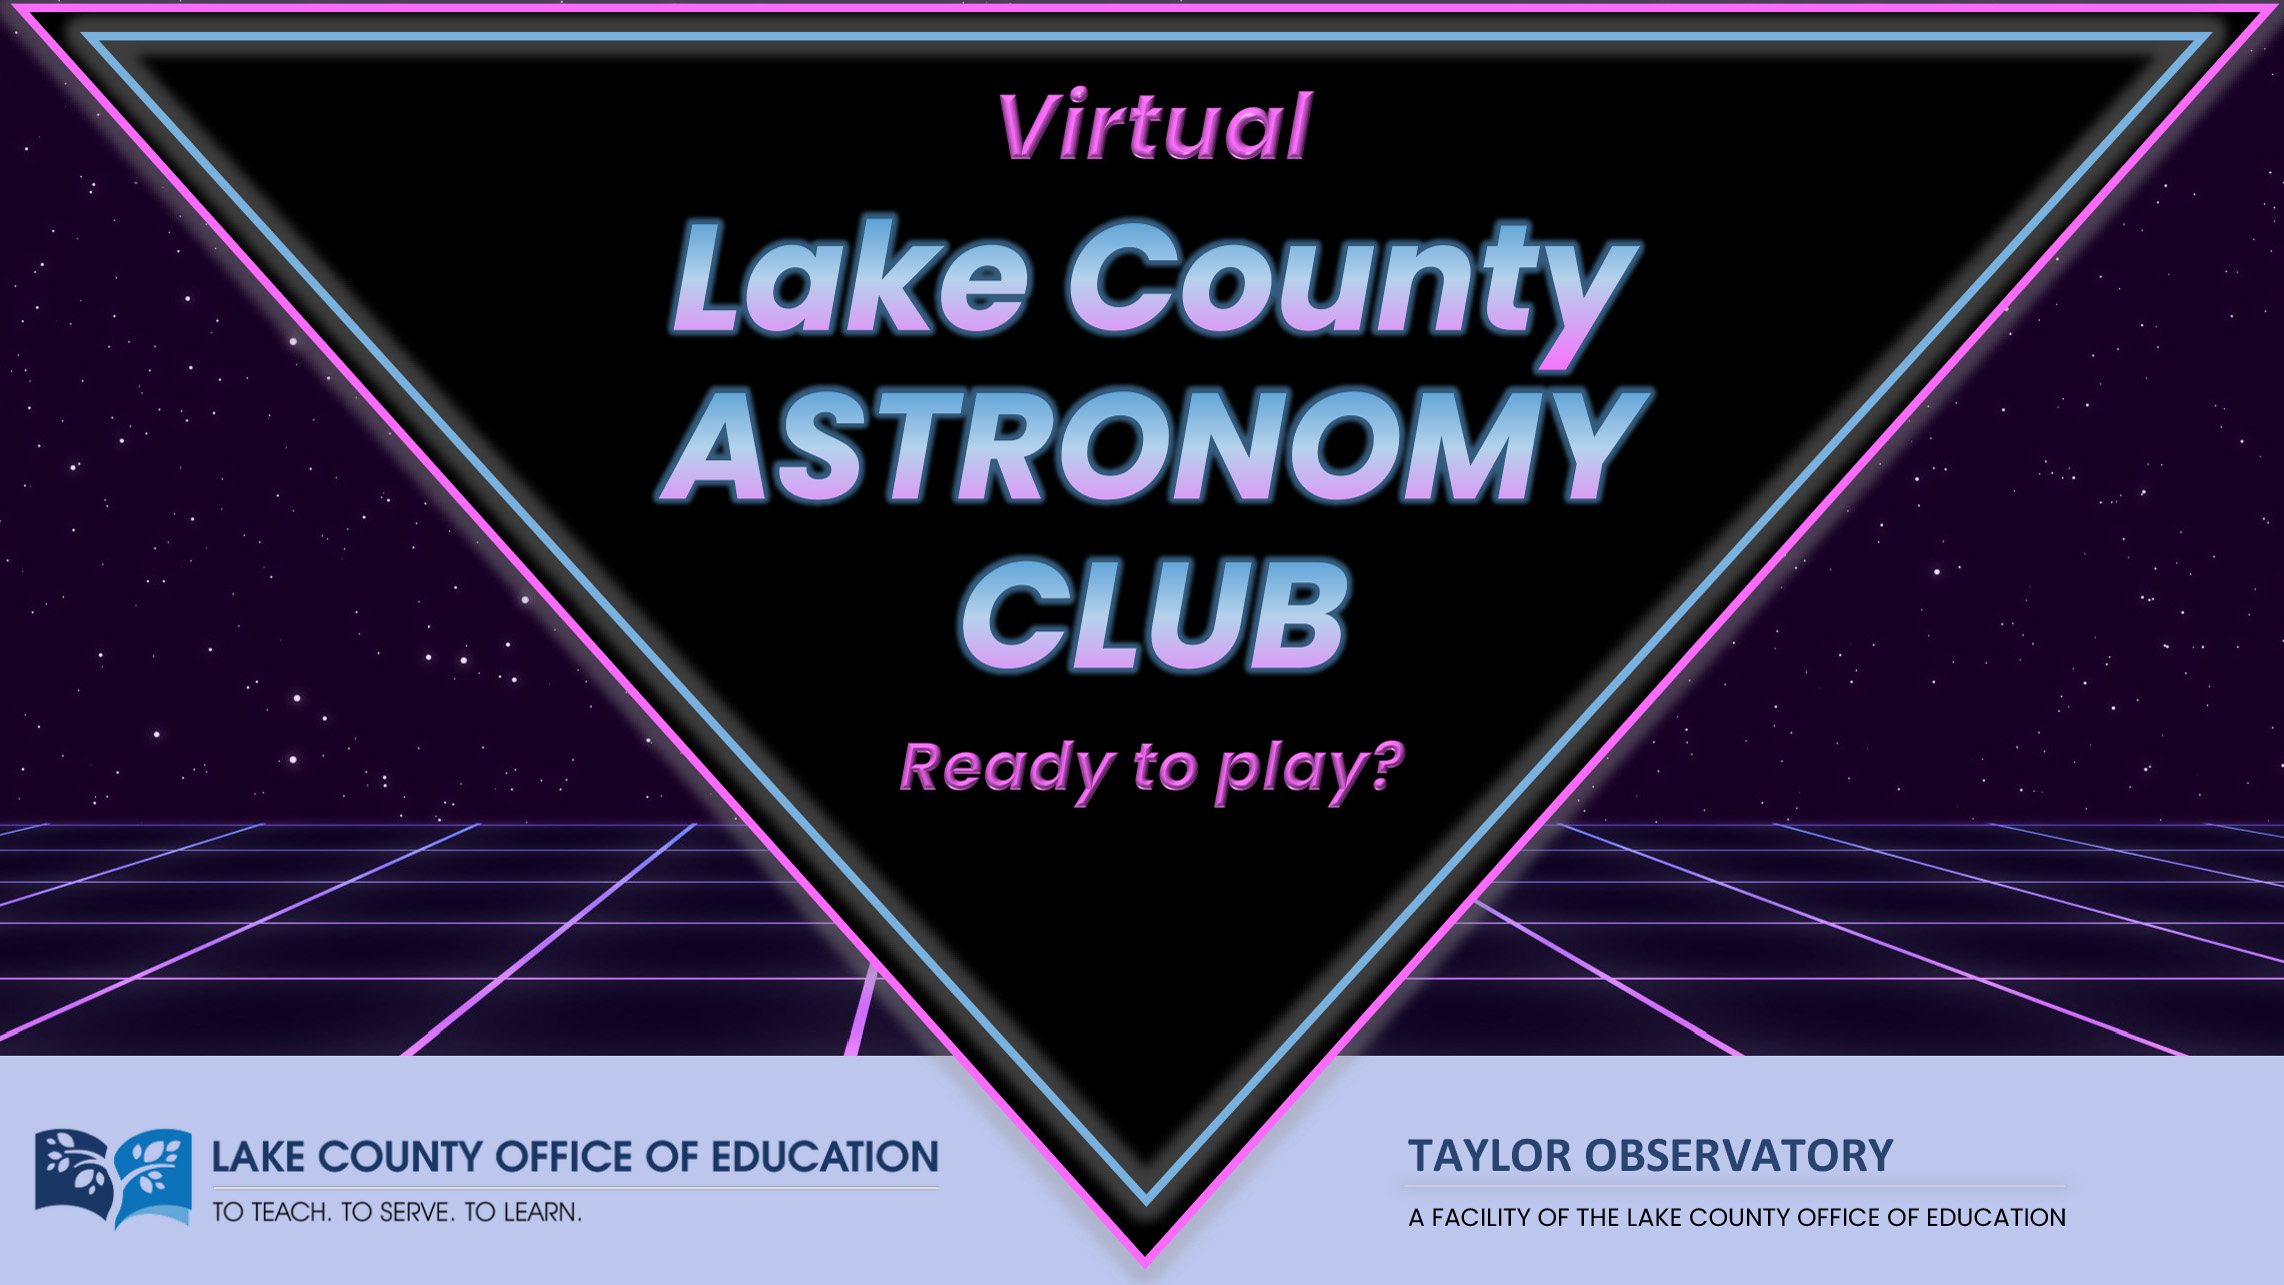 Astronomy Club Graphic